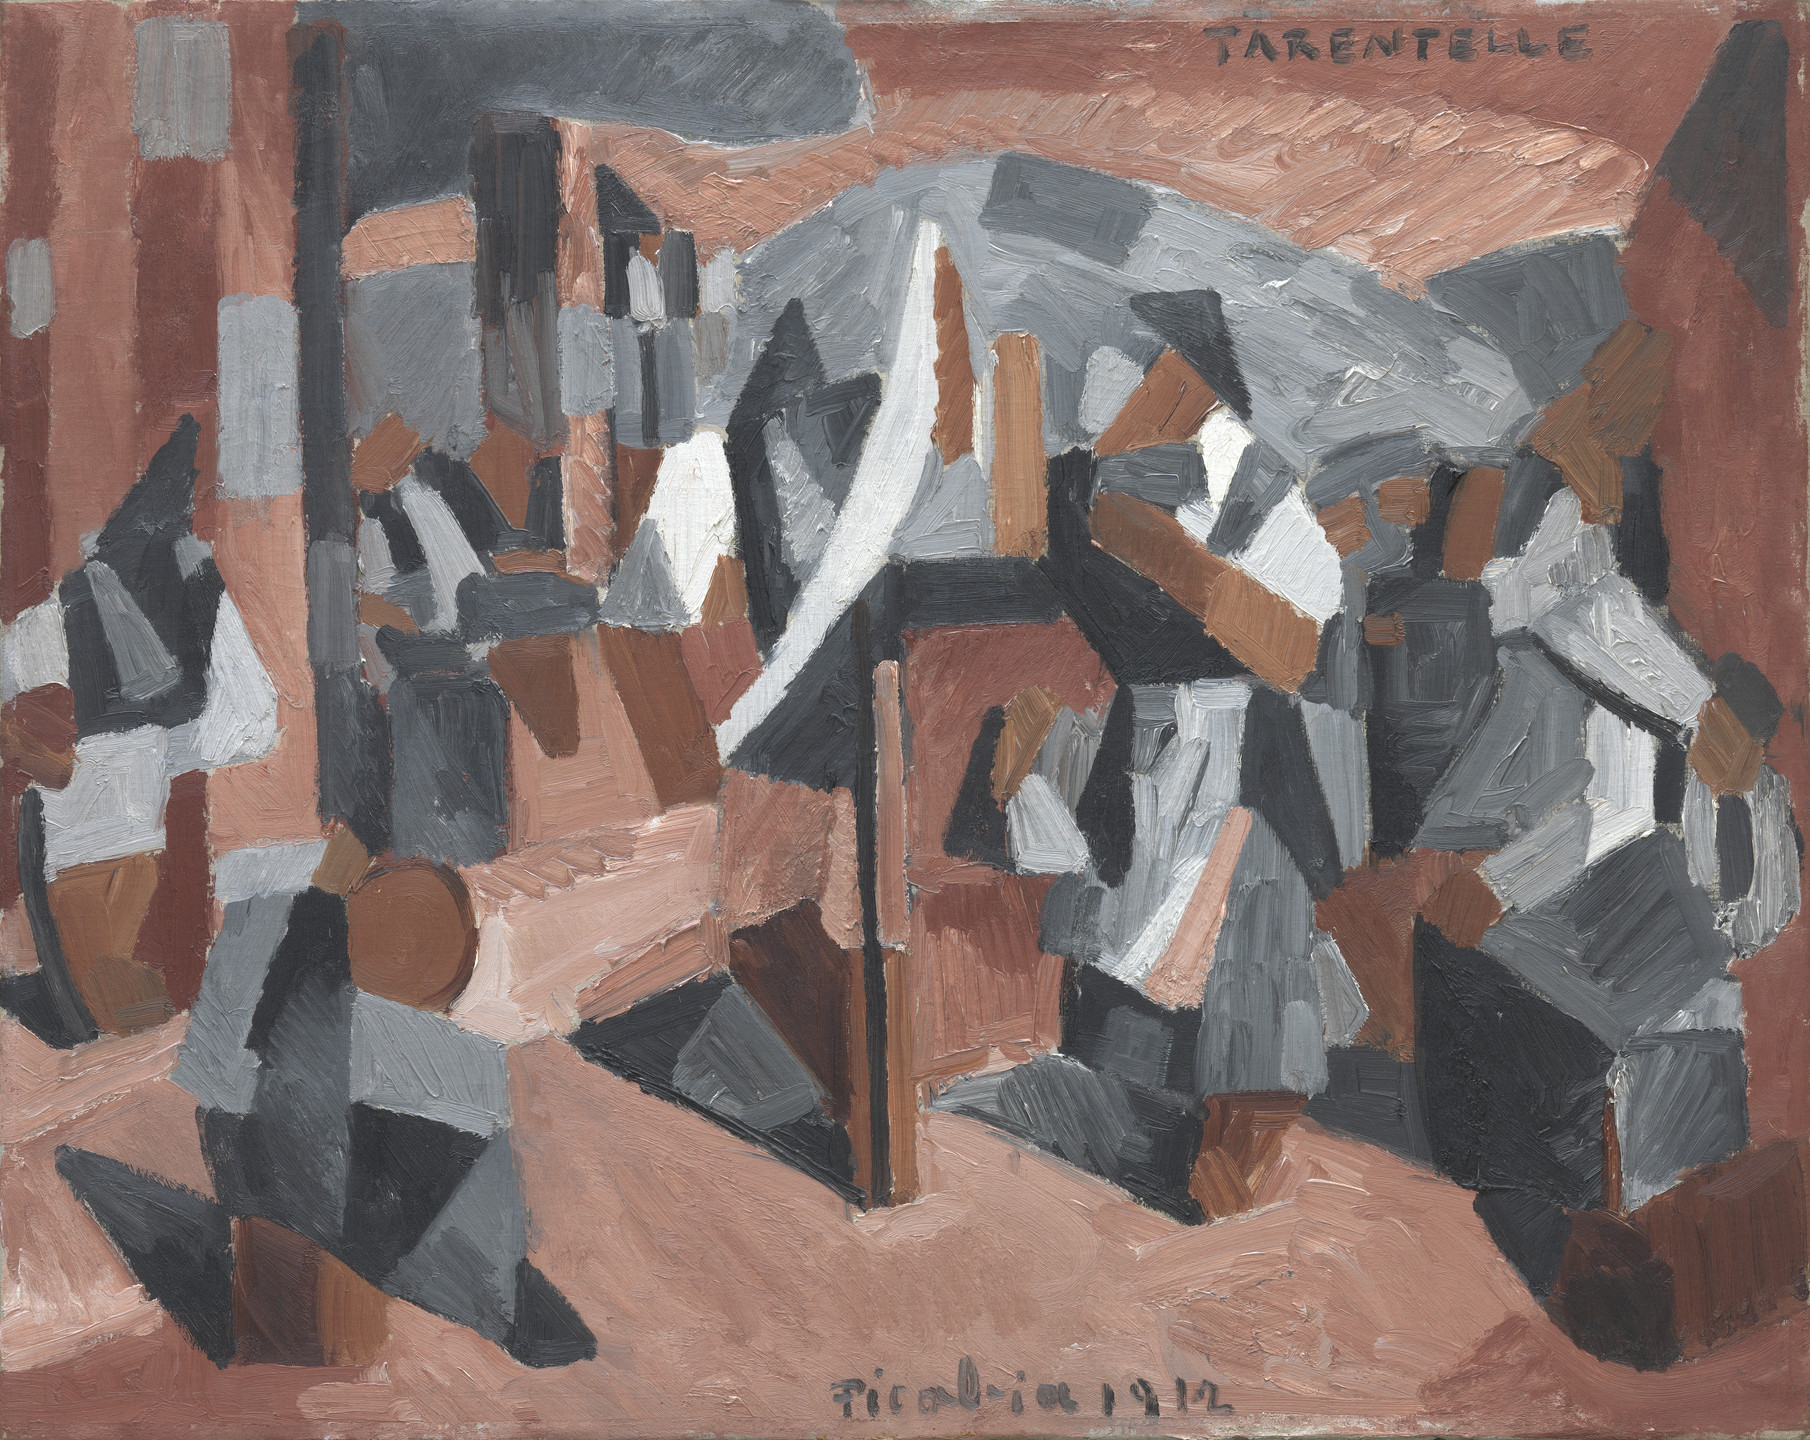 Francis Picabia. Tarentelle. Paris, January - early June 1912